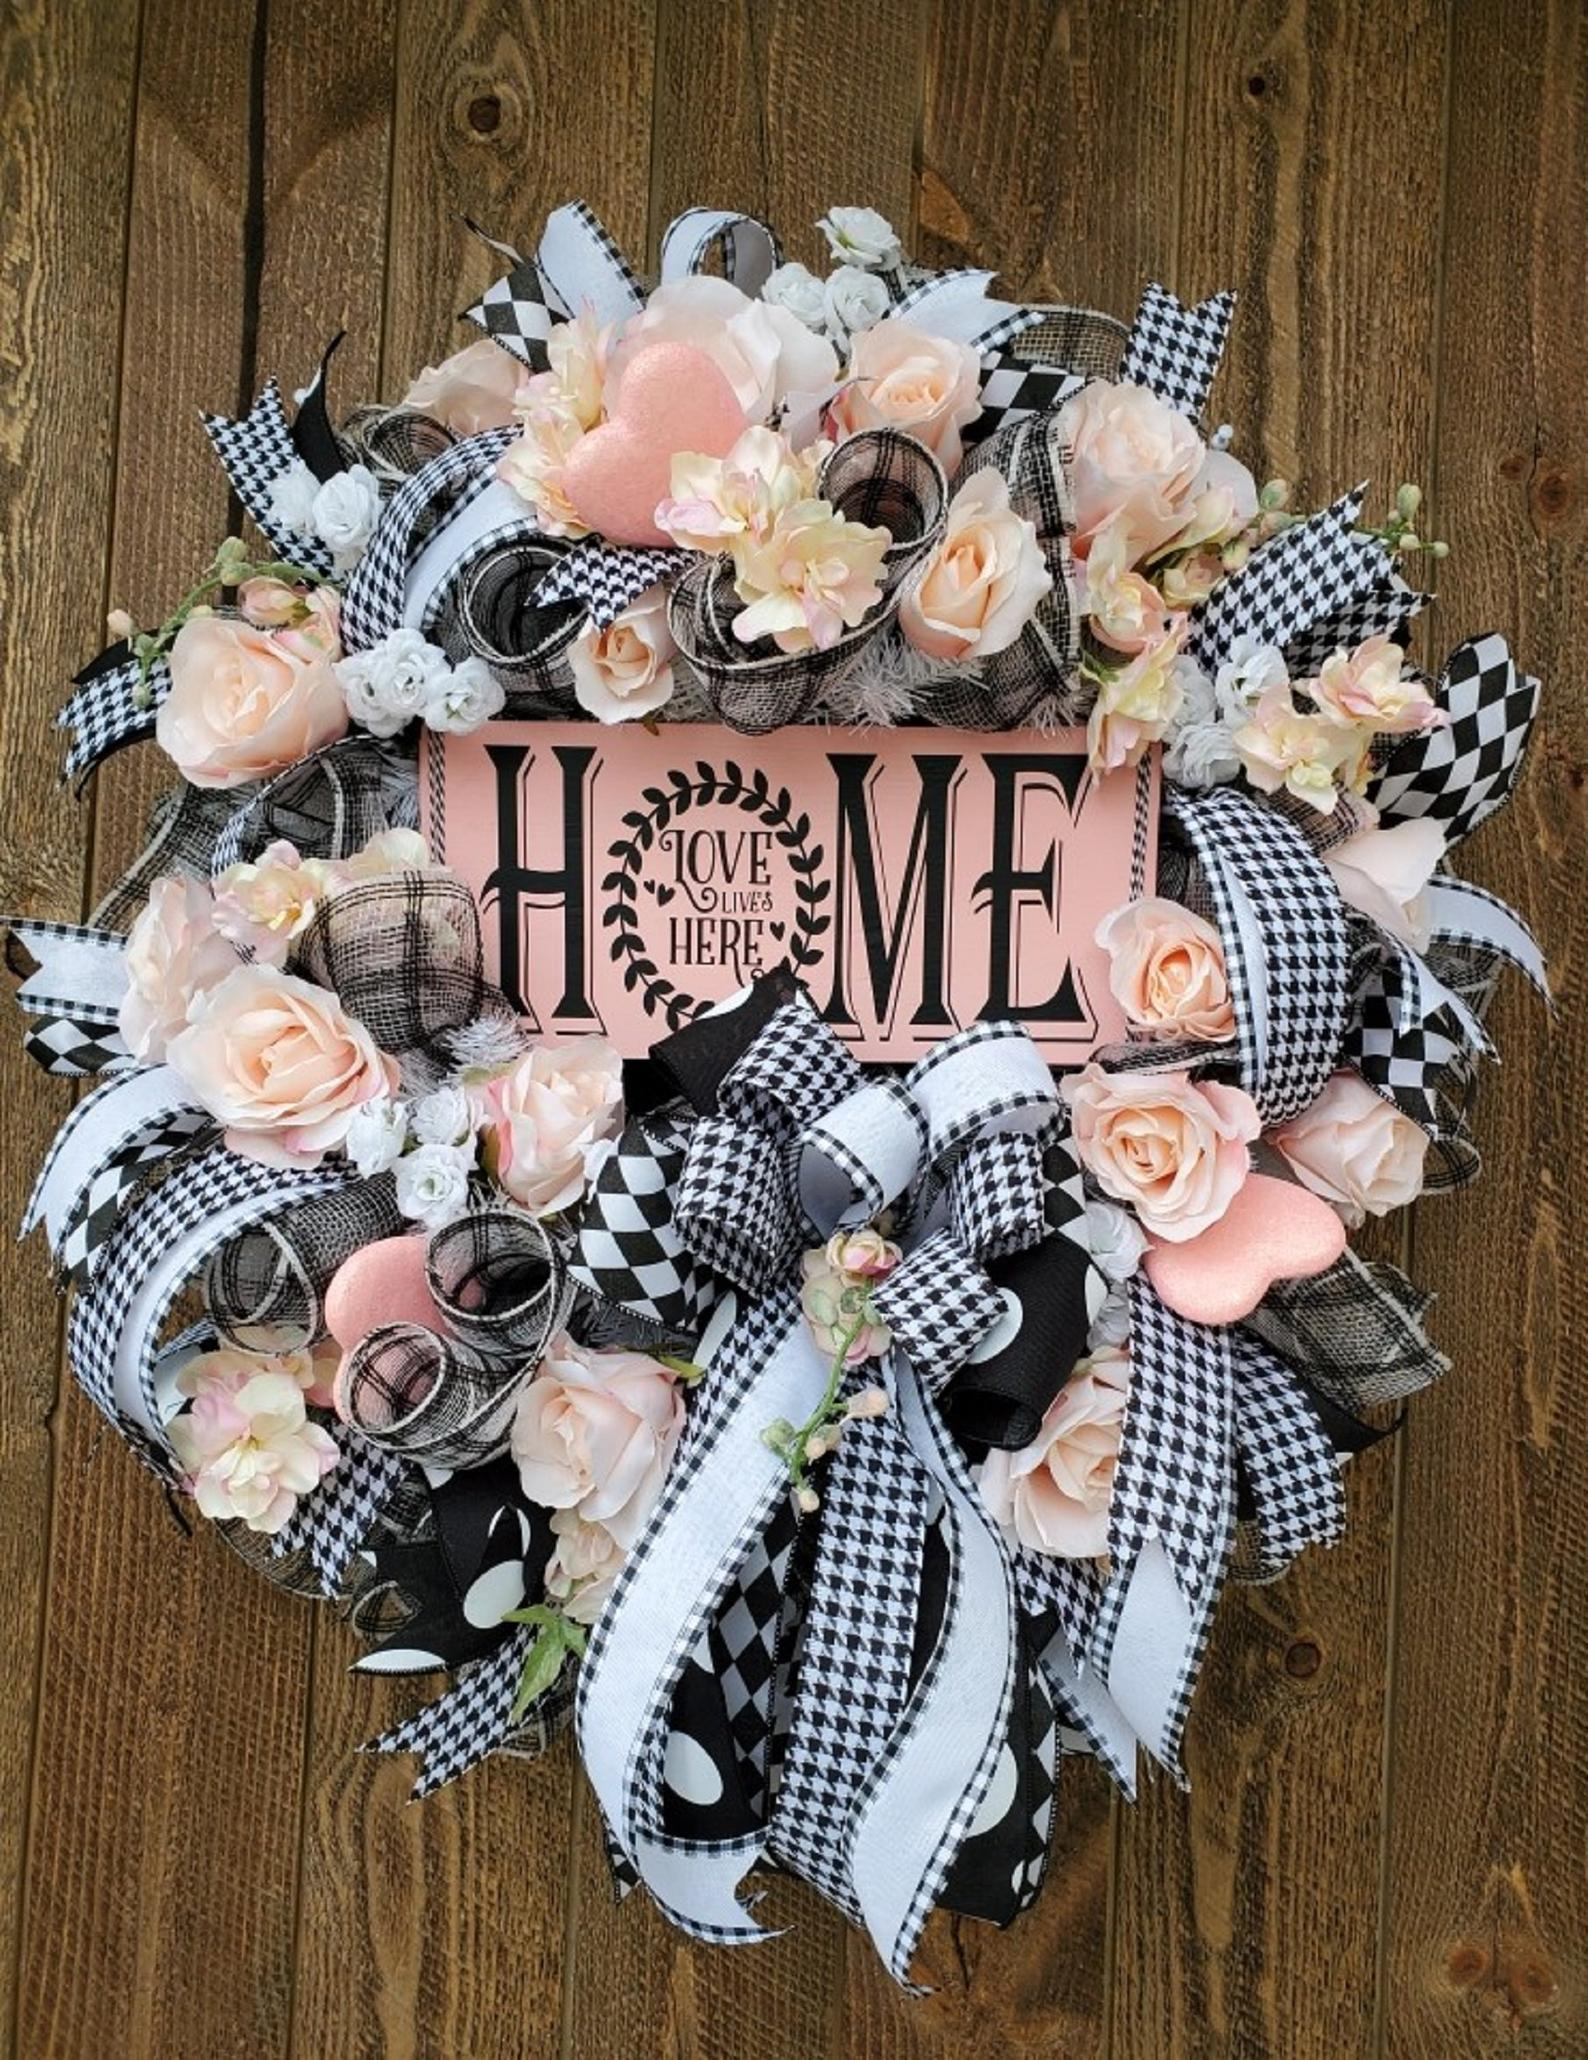 Black, white and pink Valentine's Day wreaths for the front door